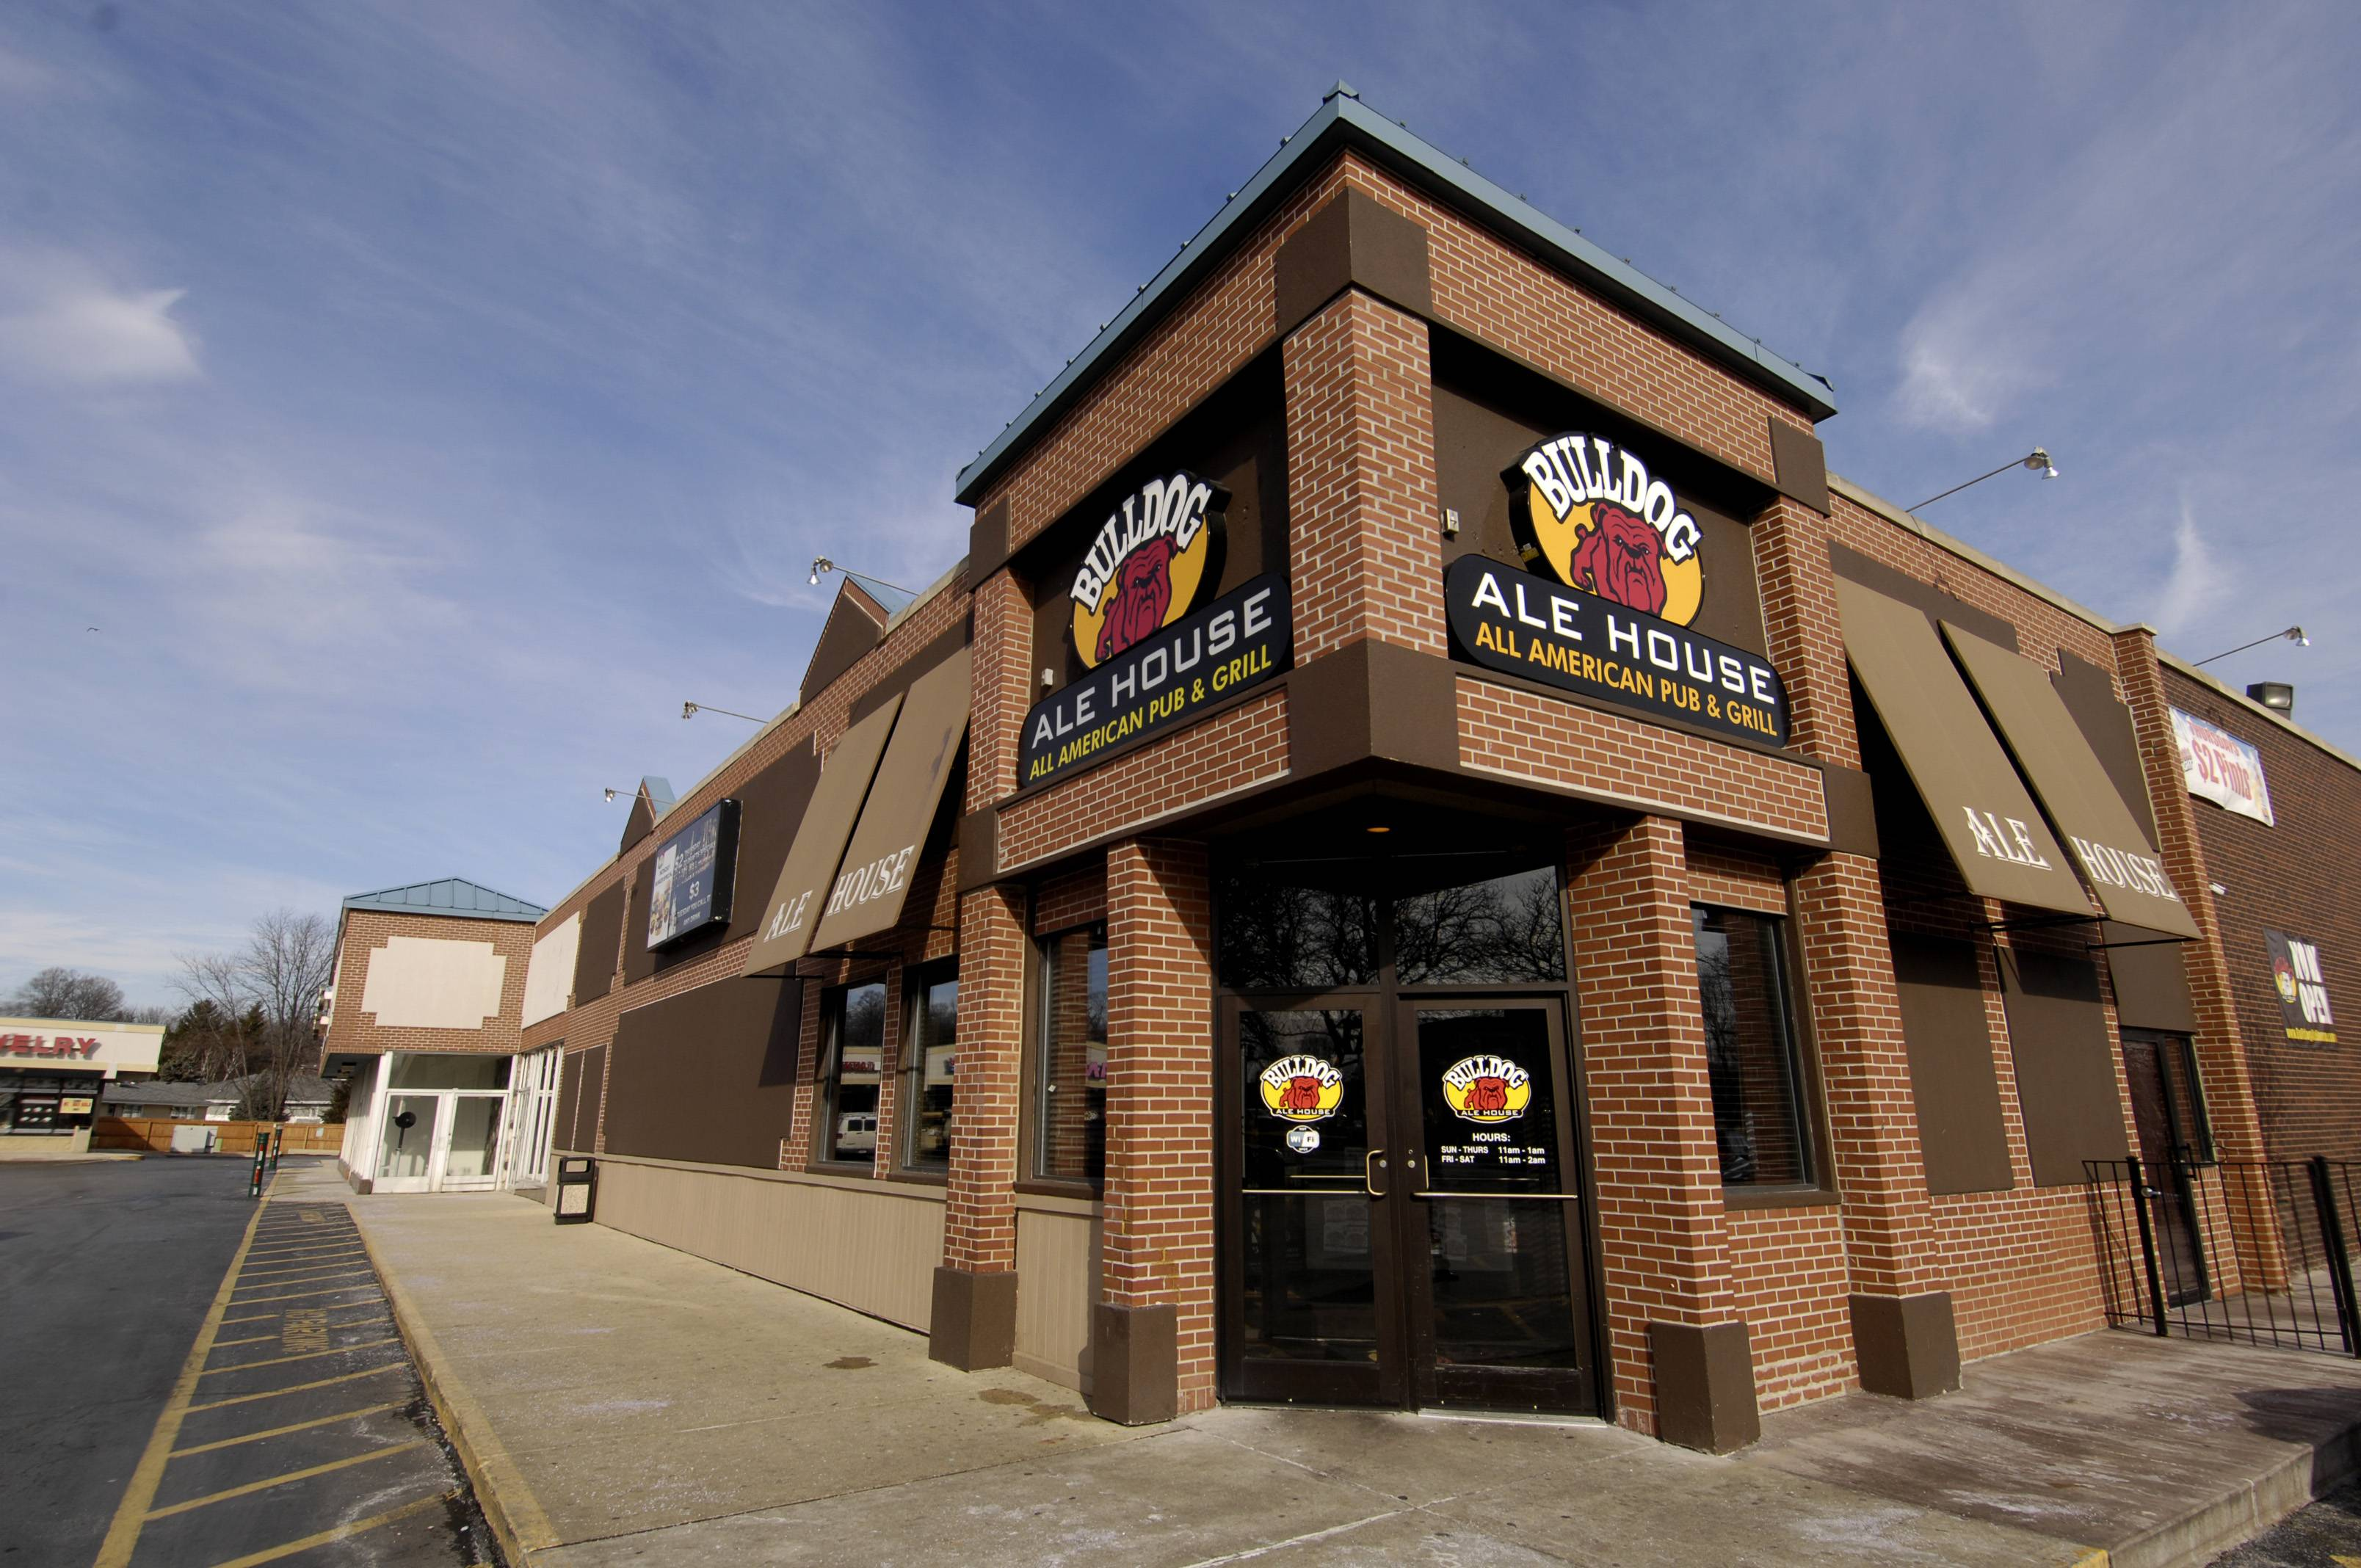 A Bulldog Ale House is opening in McHenry. It will join other locations, incluidng this one in Roselle.